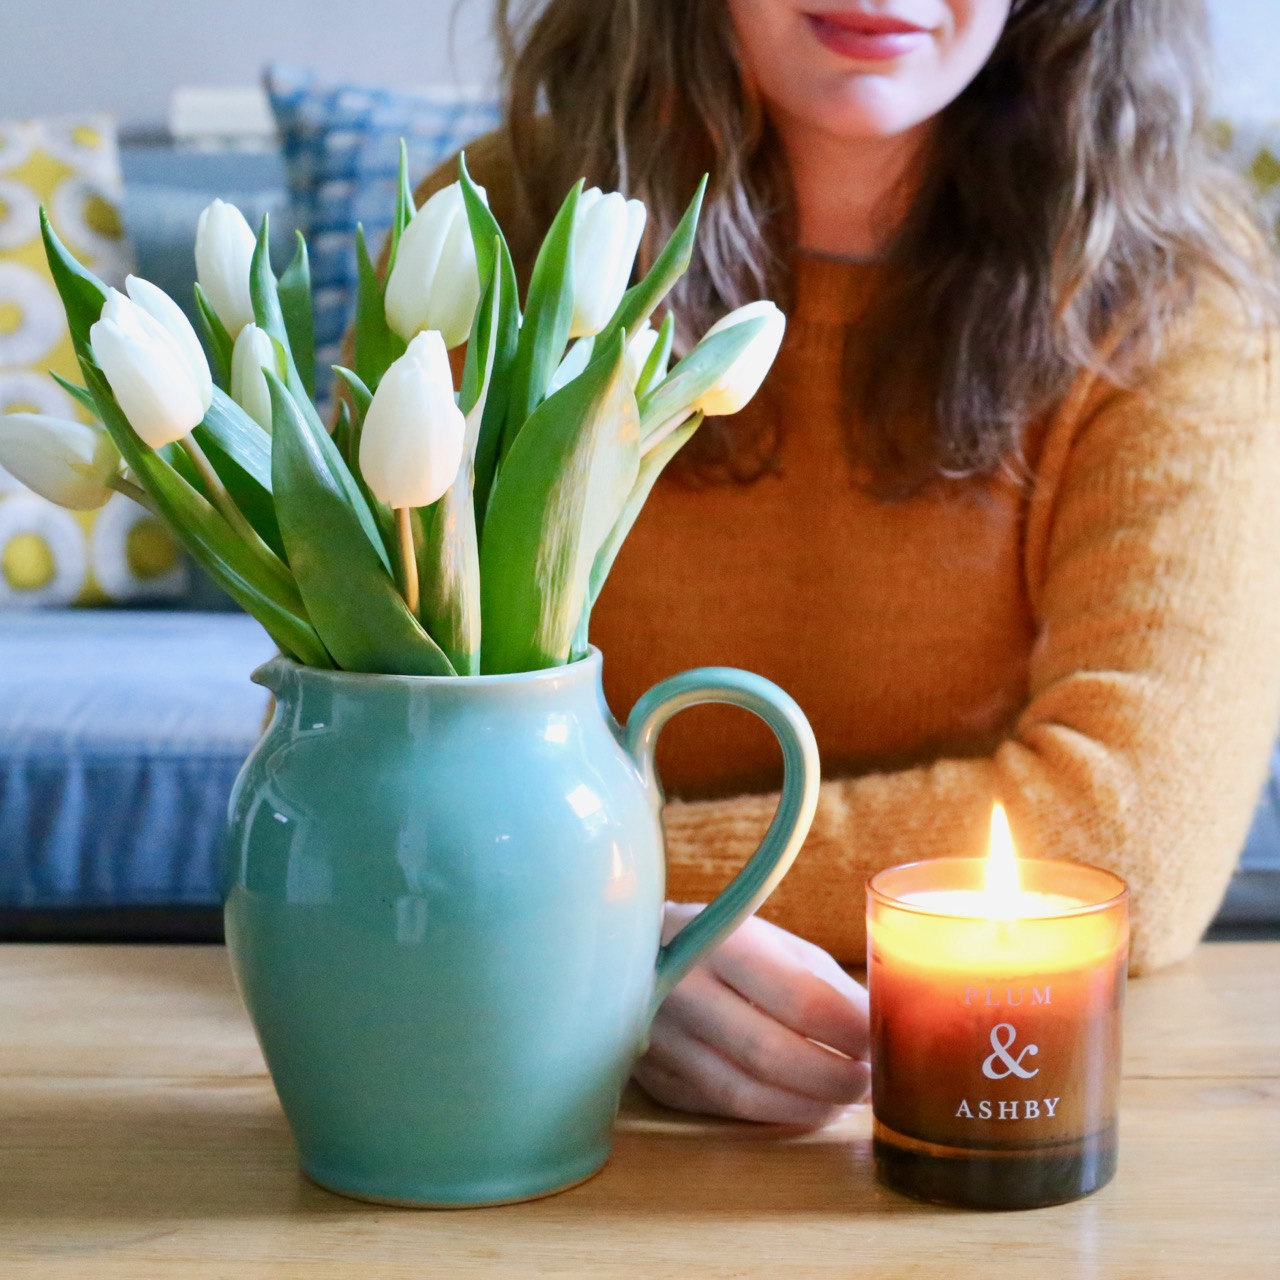 Plum & Ashby candle